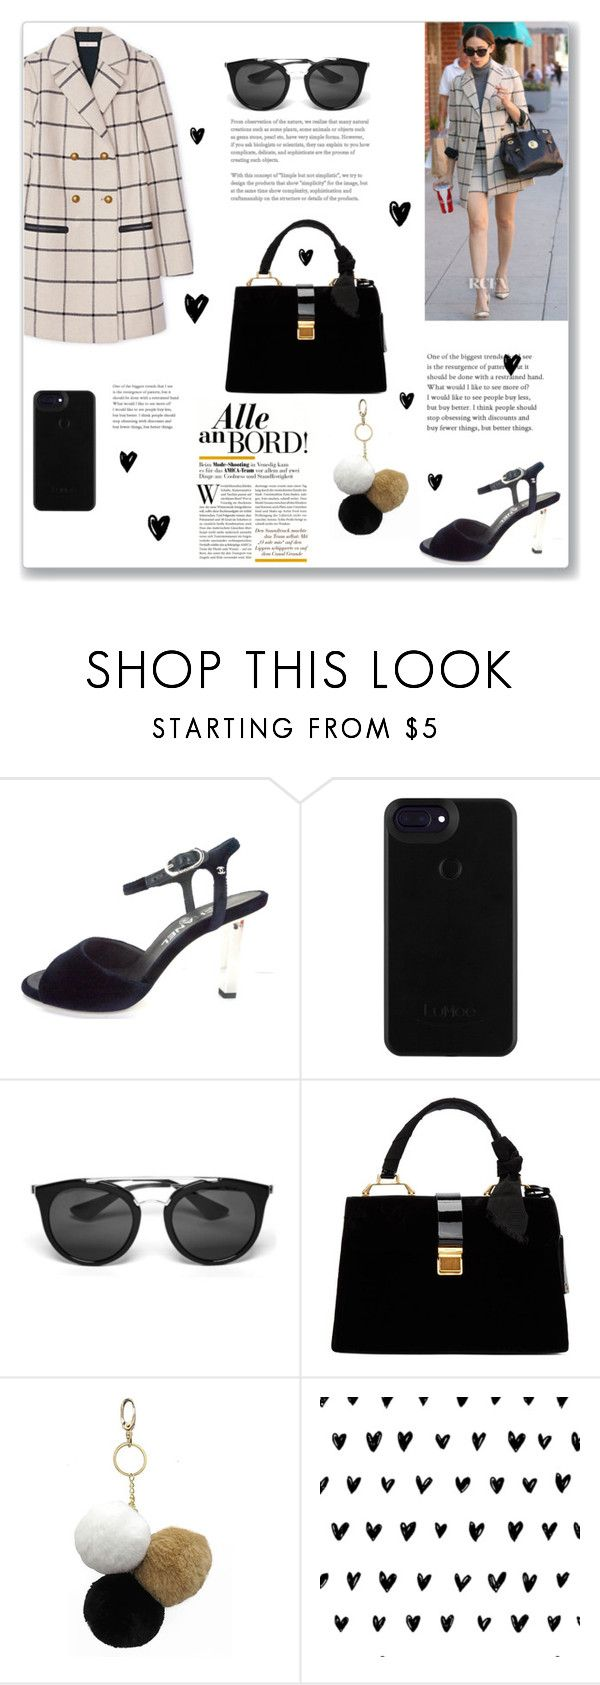 """Untitled #65"" by sonja-br ❤ liked on Polyvore featuring Tory Burch, Chanel, Prada, Miu Miu and Under One Sky"